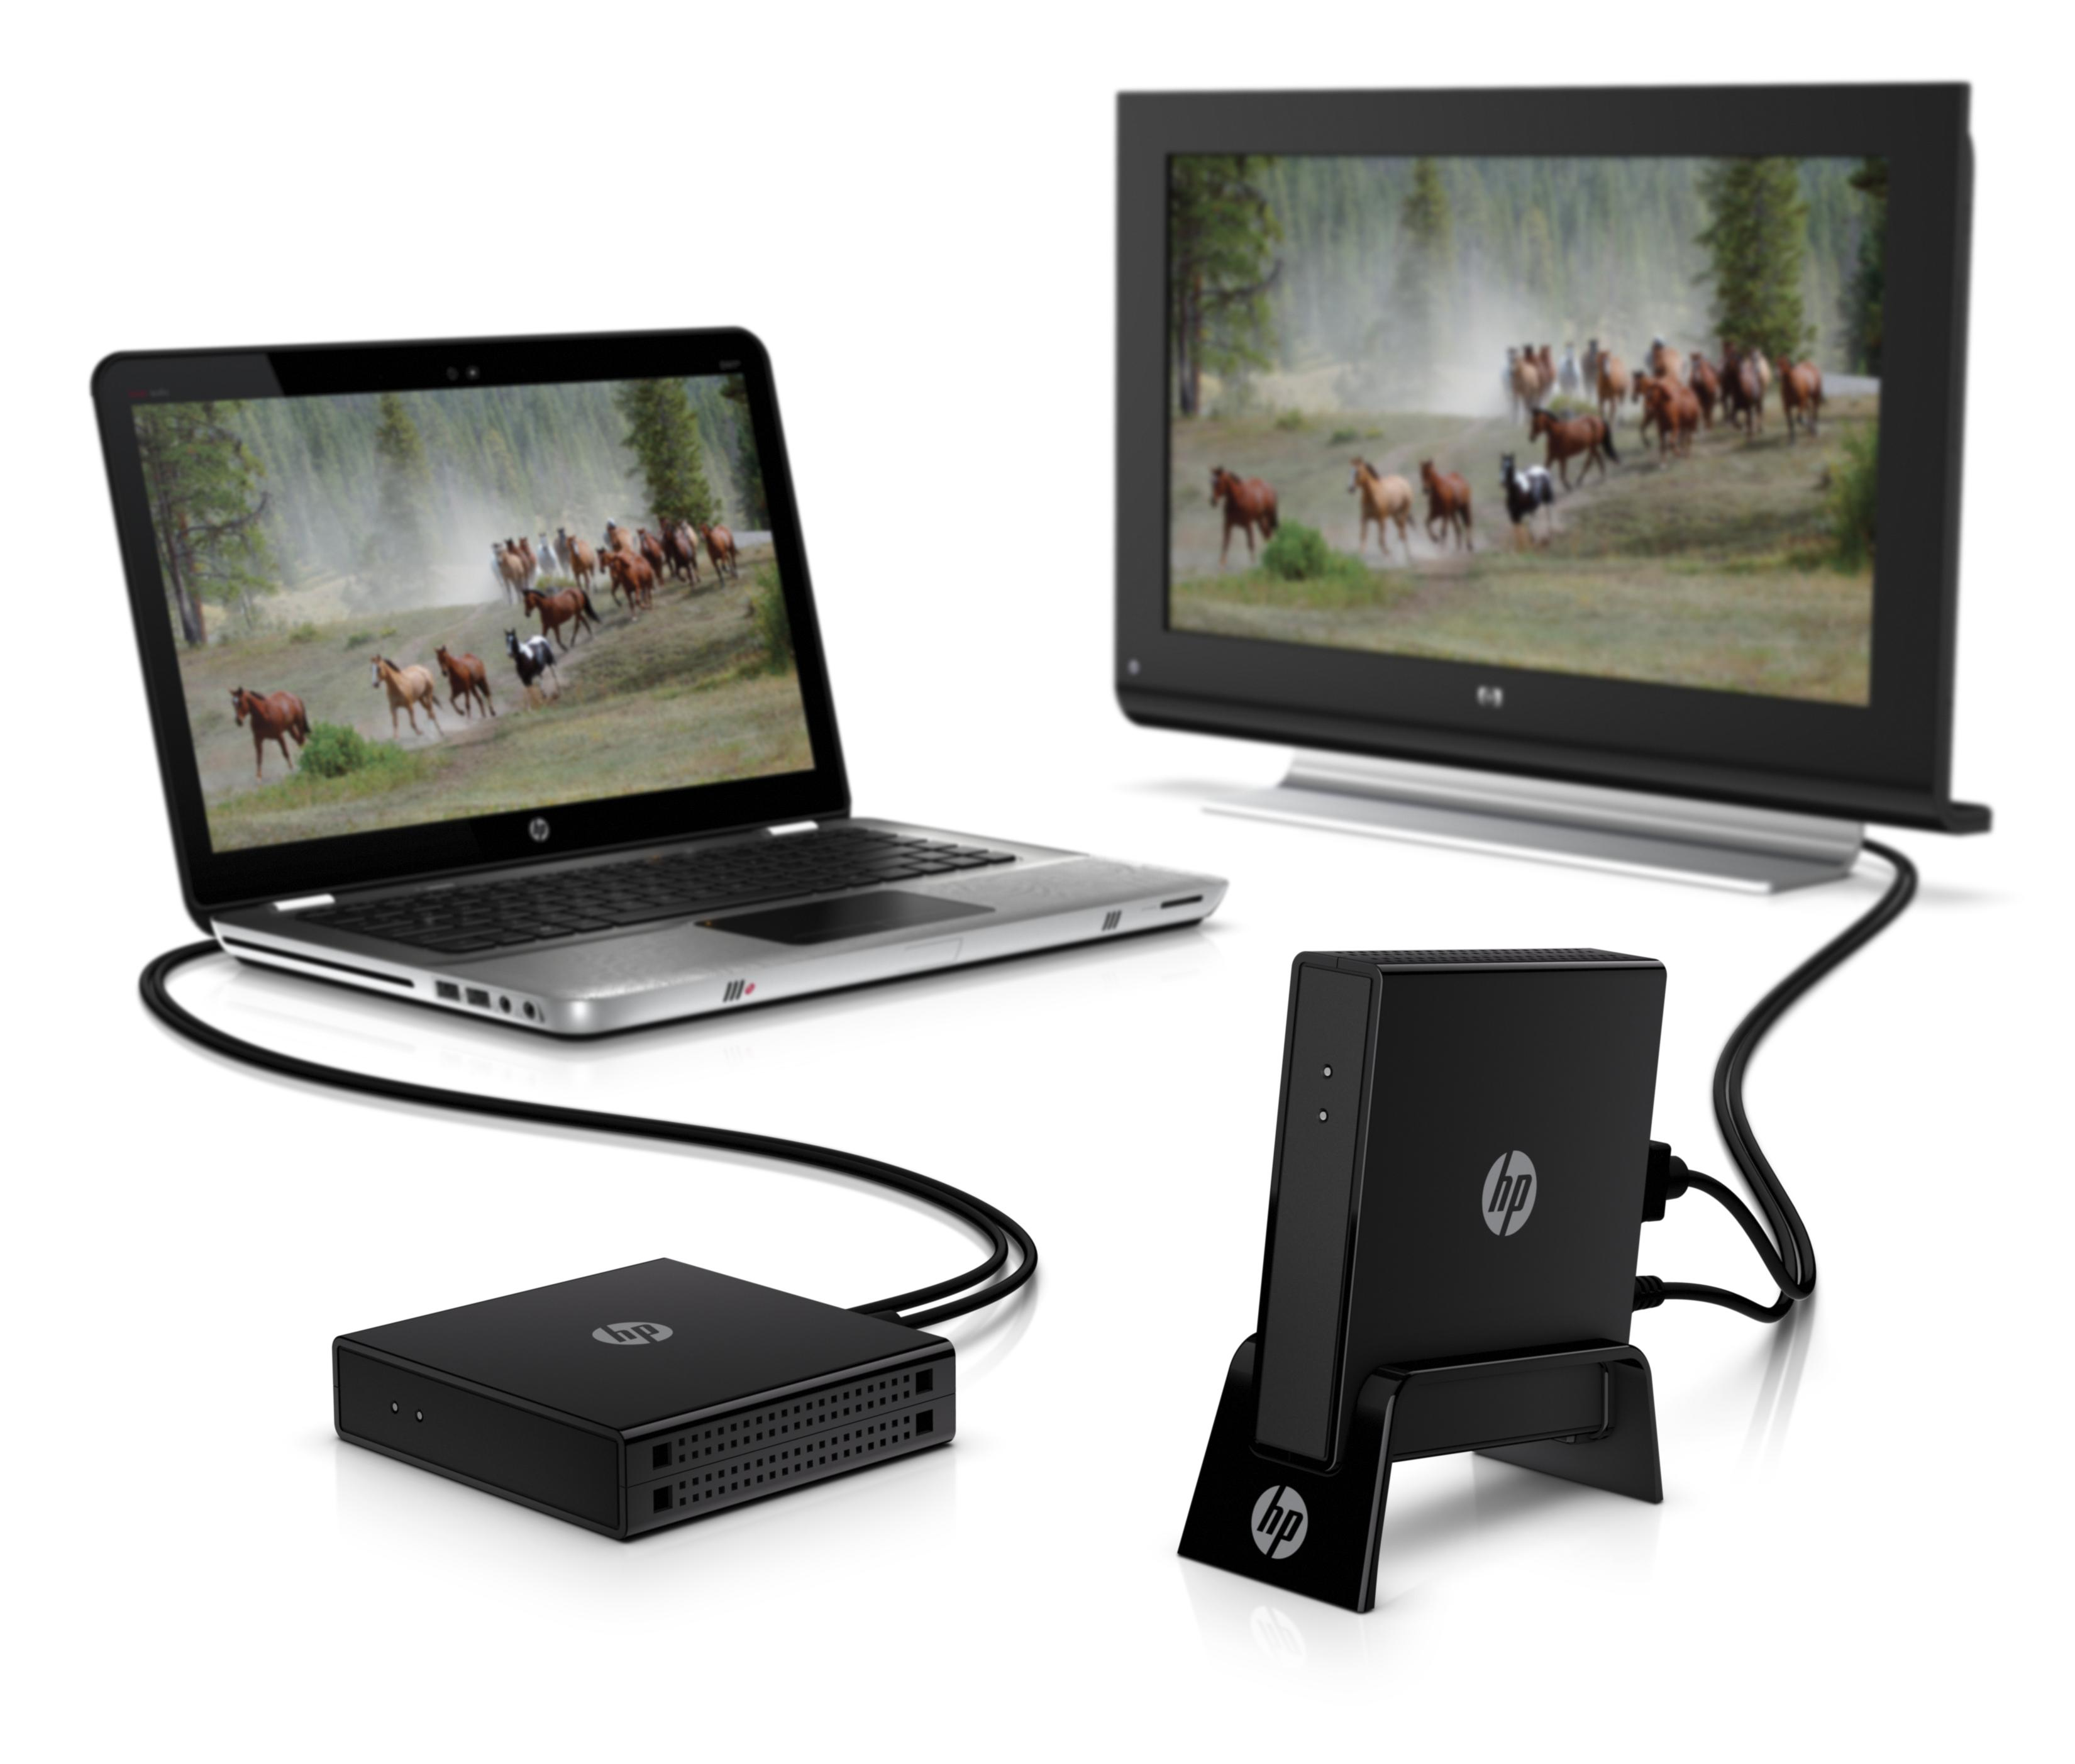 HP Wireless TV Connect, group